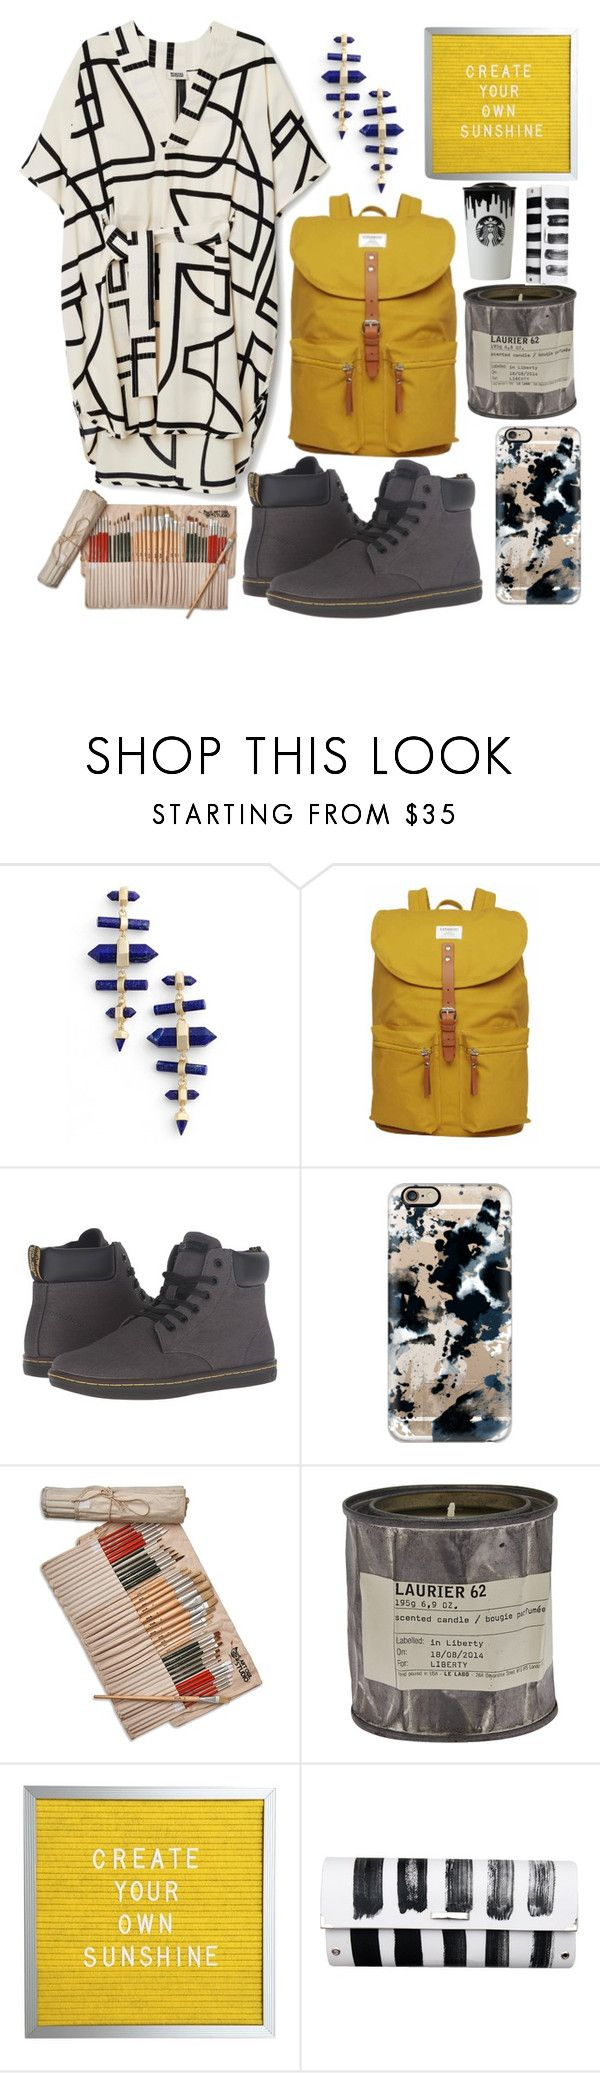 """art student"" by pembrly ❤ liked on Polyvore featuring Kendra Scott, Sandqvist, Dr. Martens, Casetify, Studio 36, Le Labo, Spanaki, backpacks, contestentry and PVStyleInsiderContest"